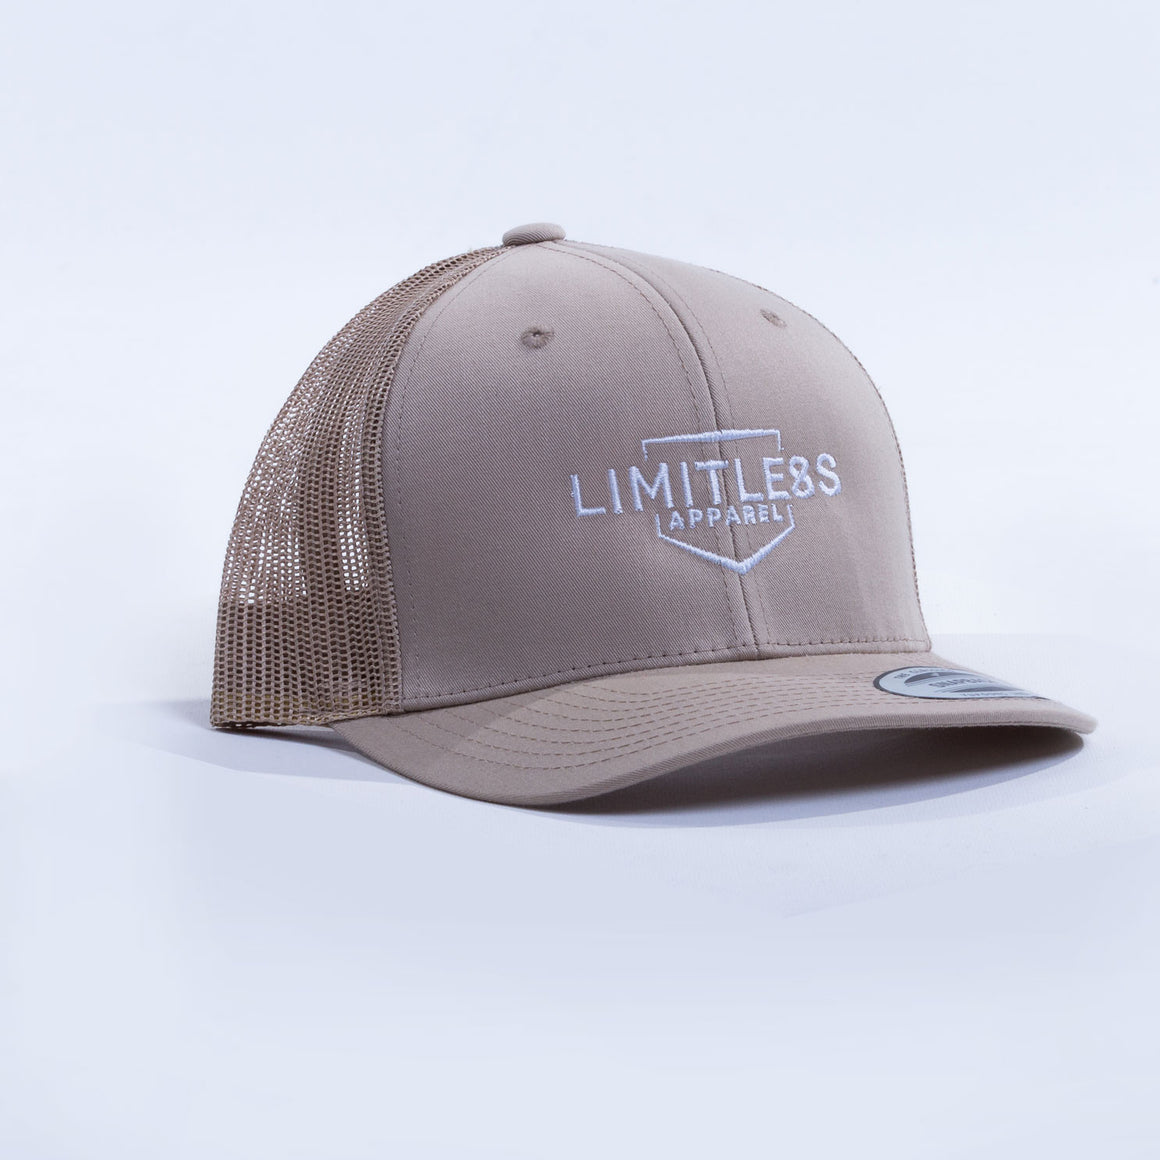 Retro trucker cap sand